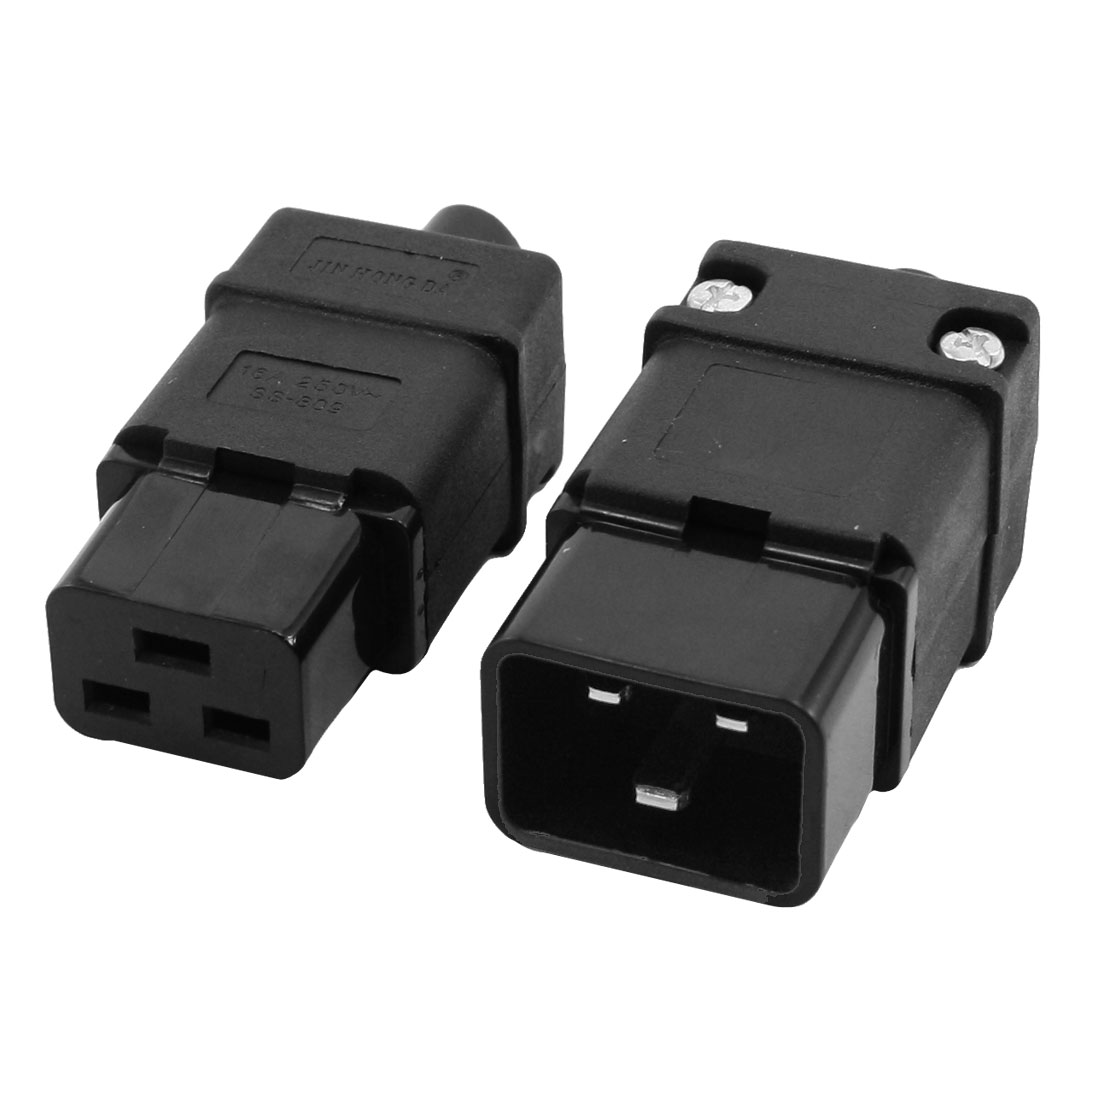 2 in 1 16A 250VAC IEC320 Series C19 Connector C20 Socket for Power Cord